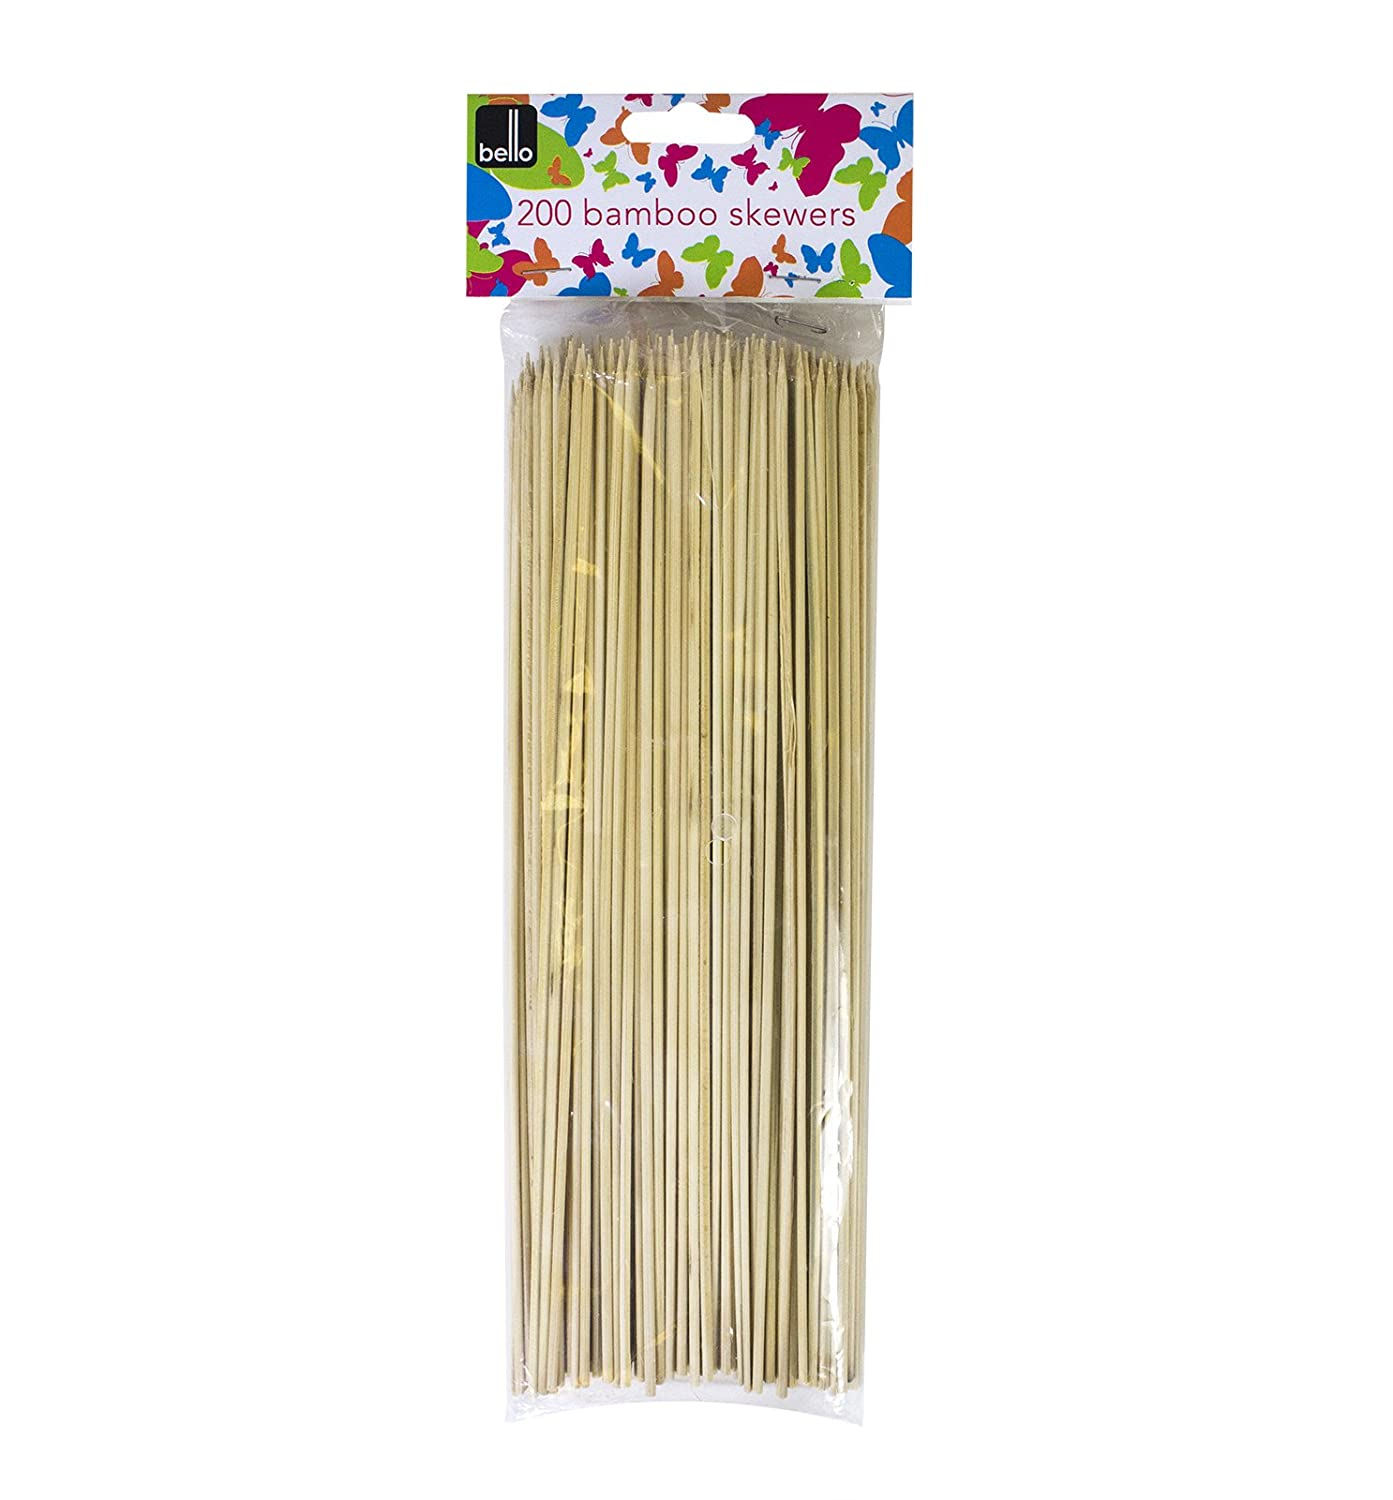 200 BBQ BAMBOO SKEWERS FOR KEBABS FRUITS CHOCLATE WOODEN BBQ STICKS 10 INCH ALANNAHS ACCESSORIES